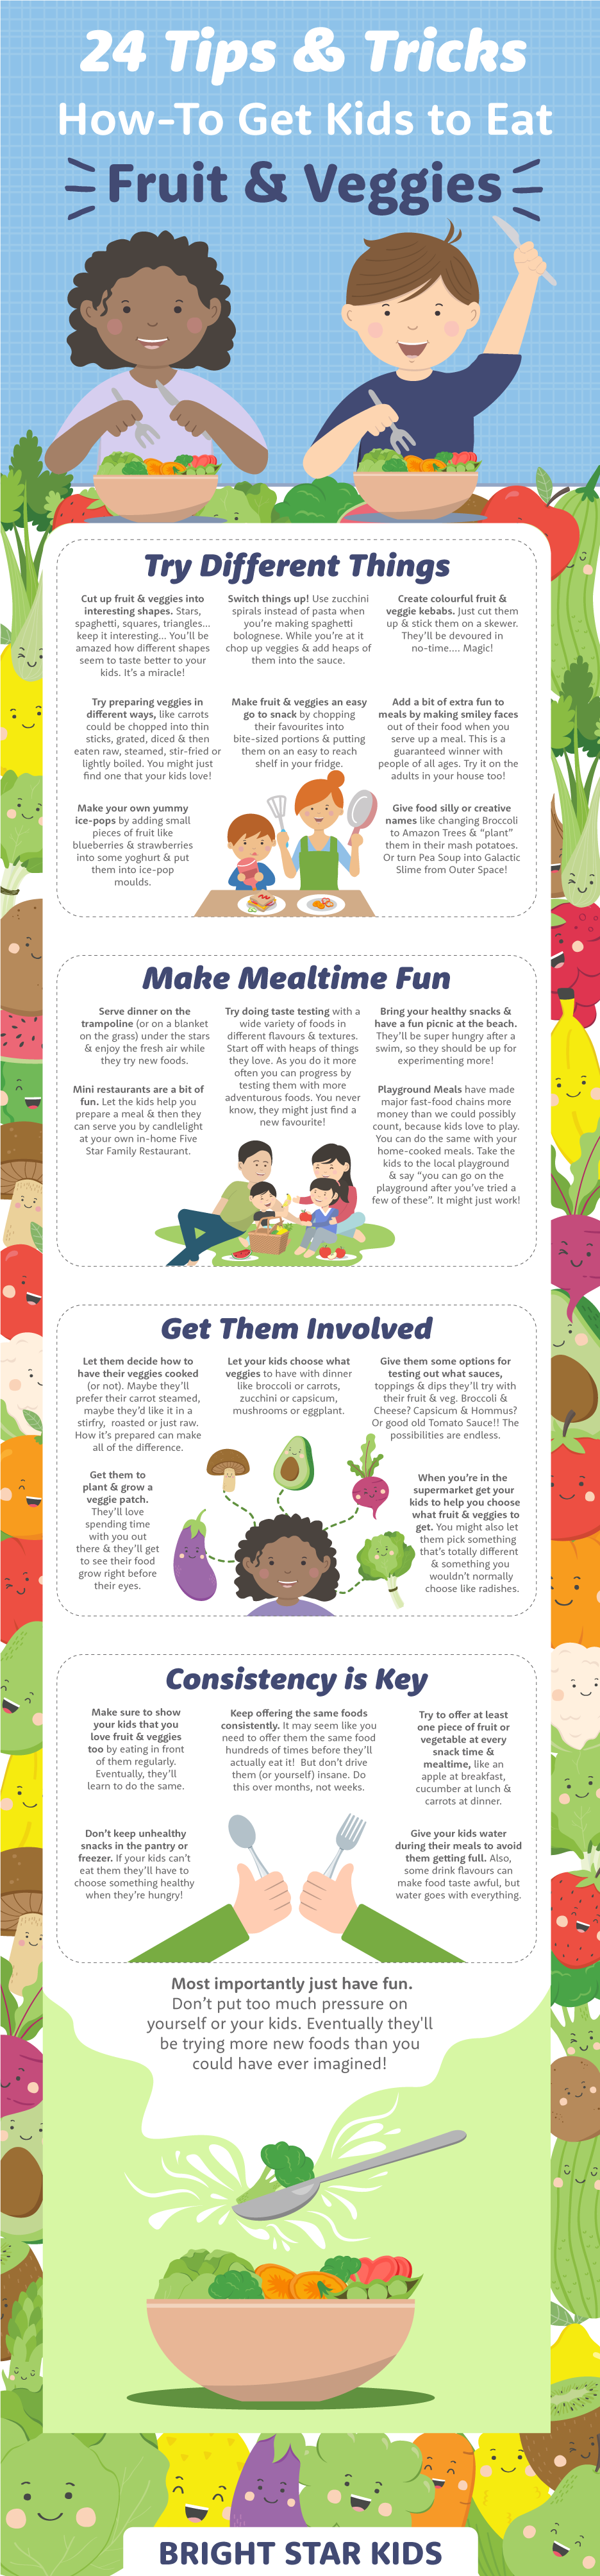 How To Get Your Kids To Eat Vegetables